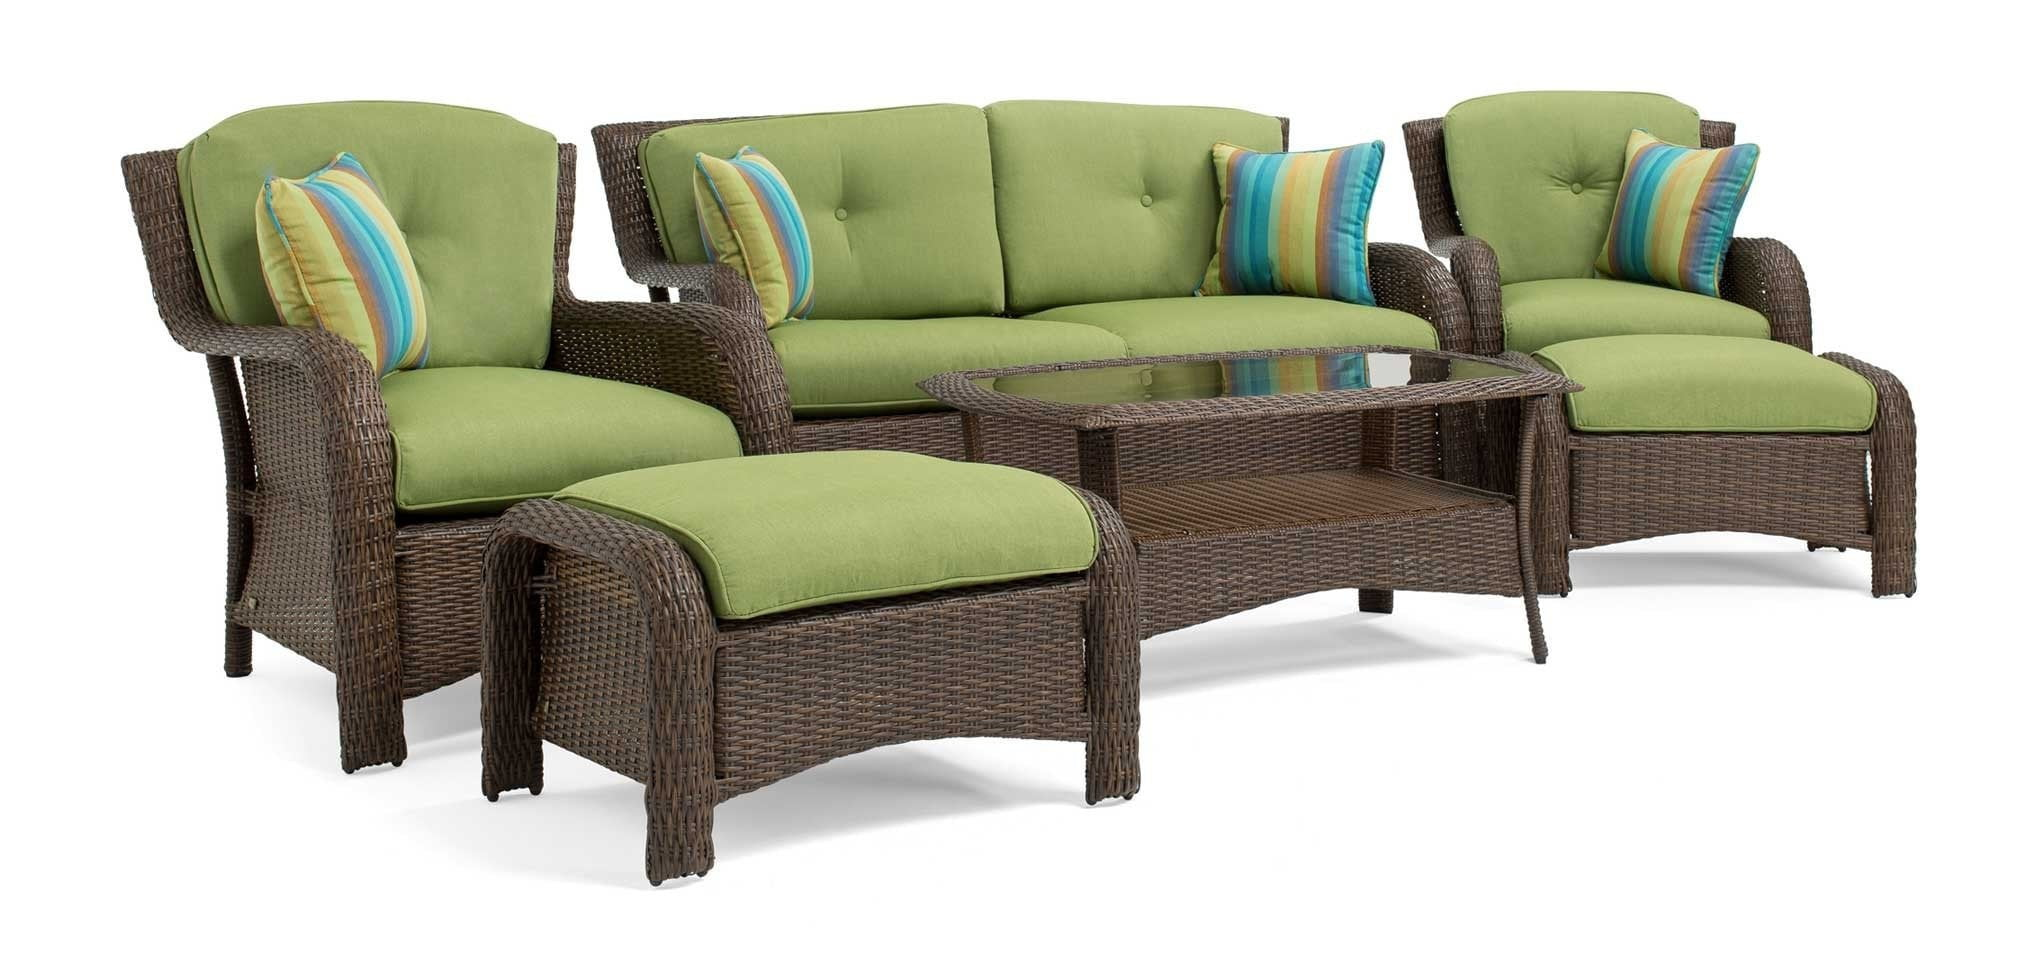 Sawyer 6pc Resin Wicker Patio Furniture Conversation Set La Z Boy